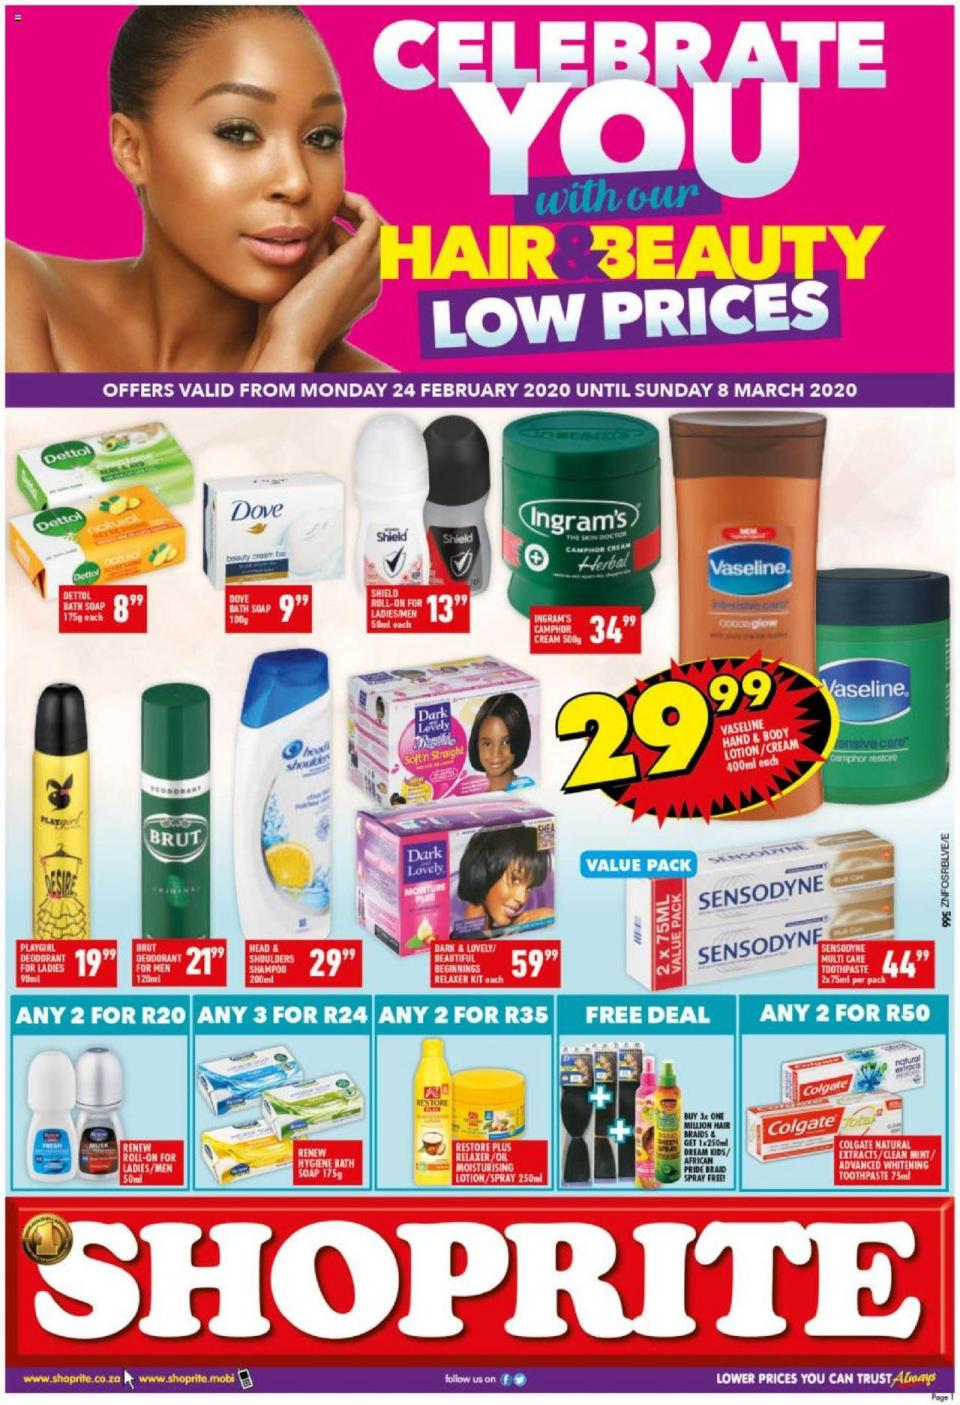 shoprite specials hair beauty promotion 26 february 2020